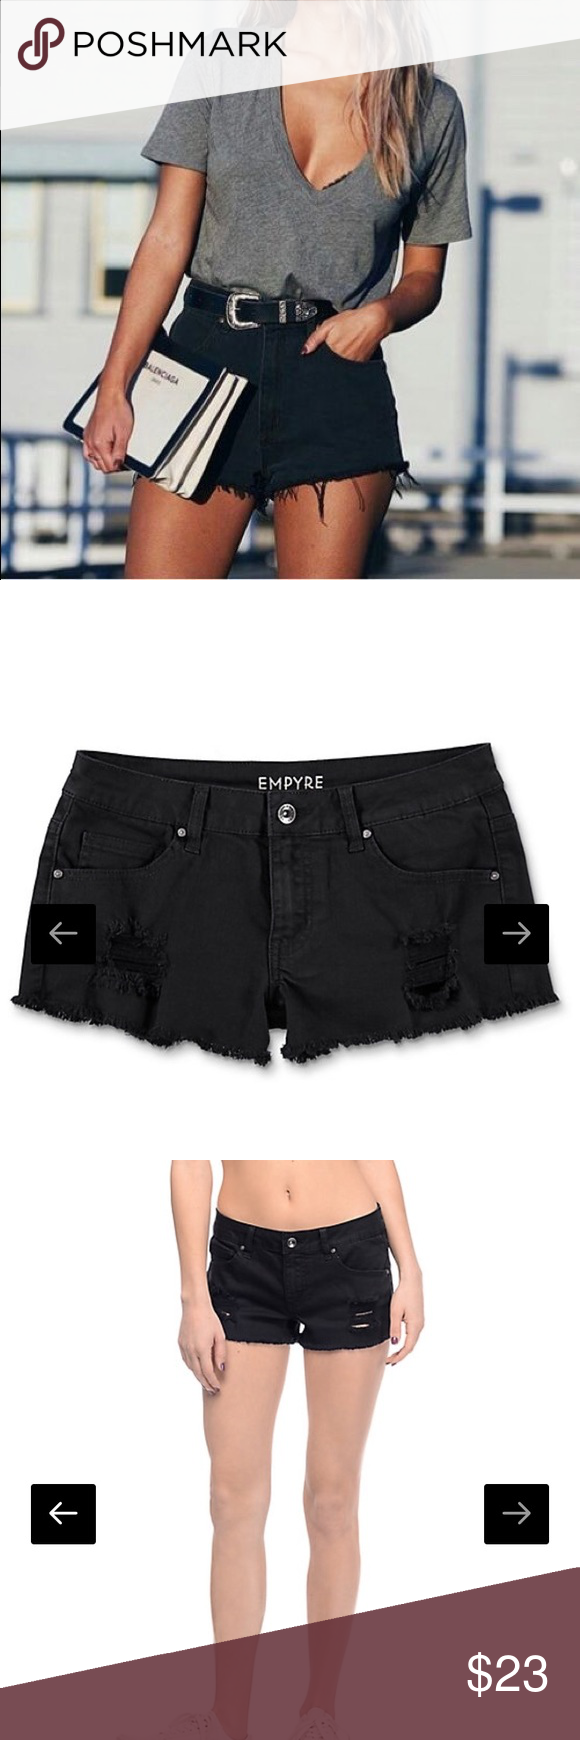 98dfb0bed1 NWT Empyre Distressed Black Shorts Brand new with tags never worn! Size 3  in juniors equivalent to a women's size 2. Zumiez Shorts